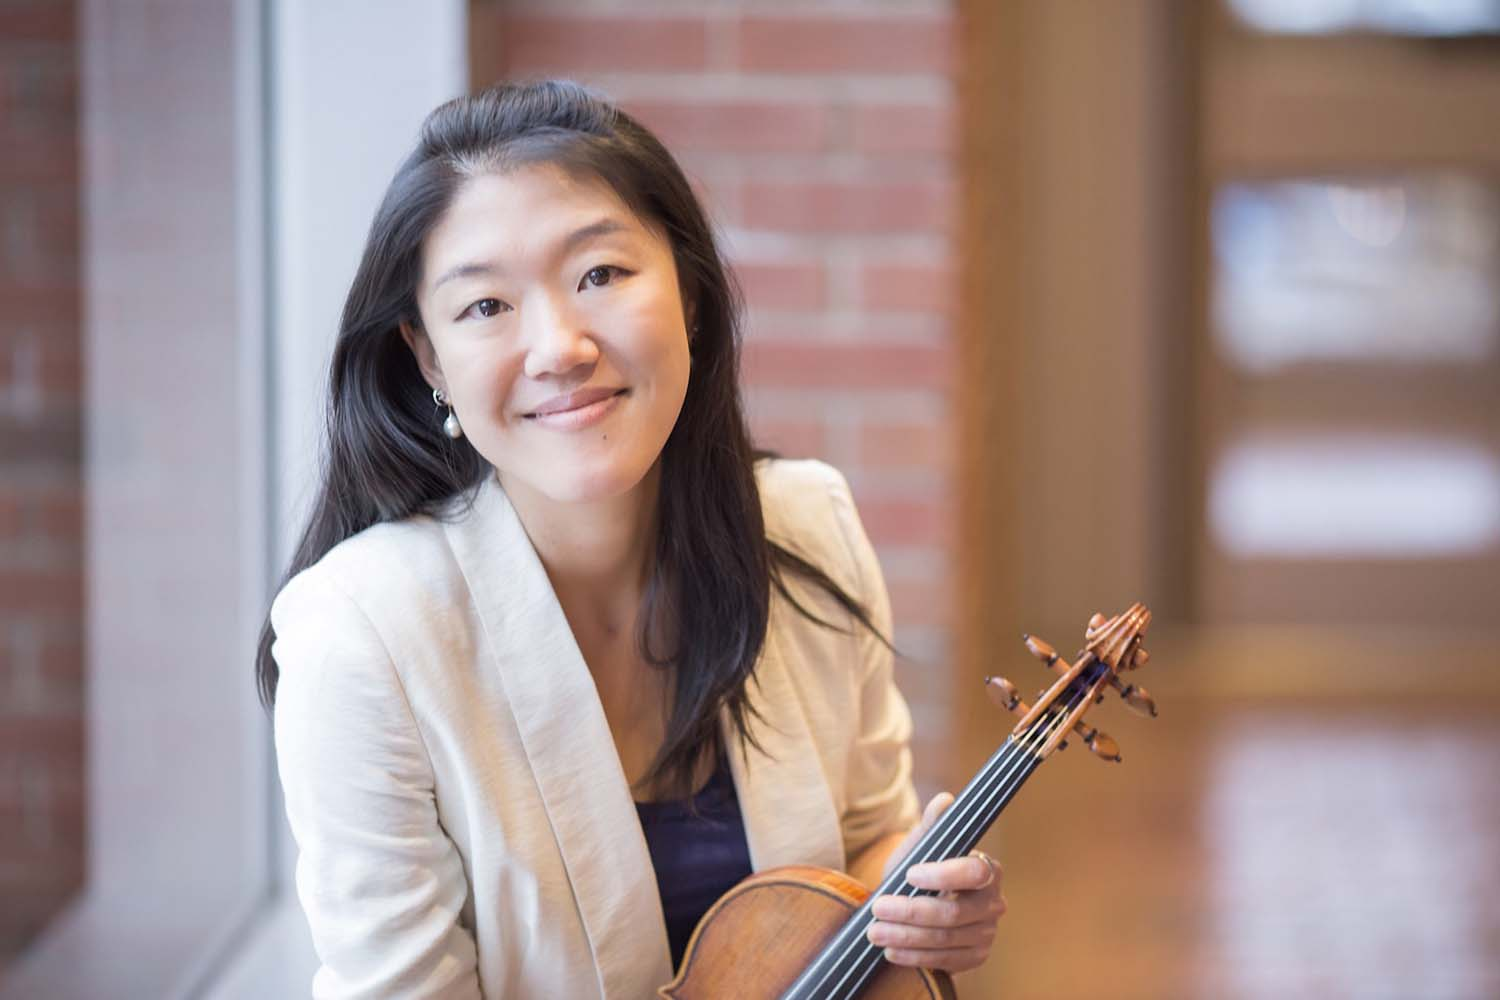 College of the Ozarks will host guest violinist Er-Gene Kahng and guest pianist Paul Whitley